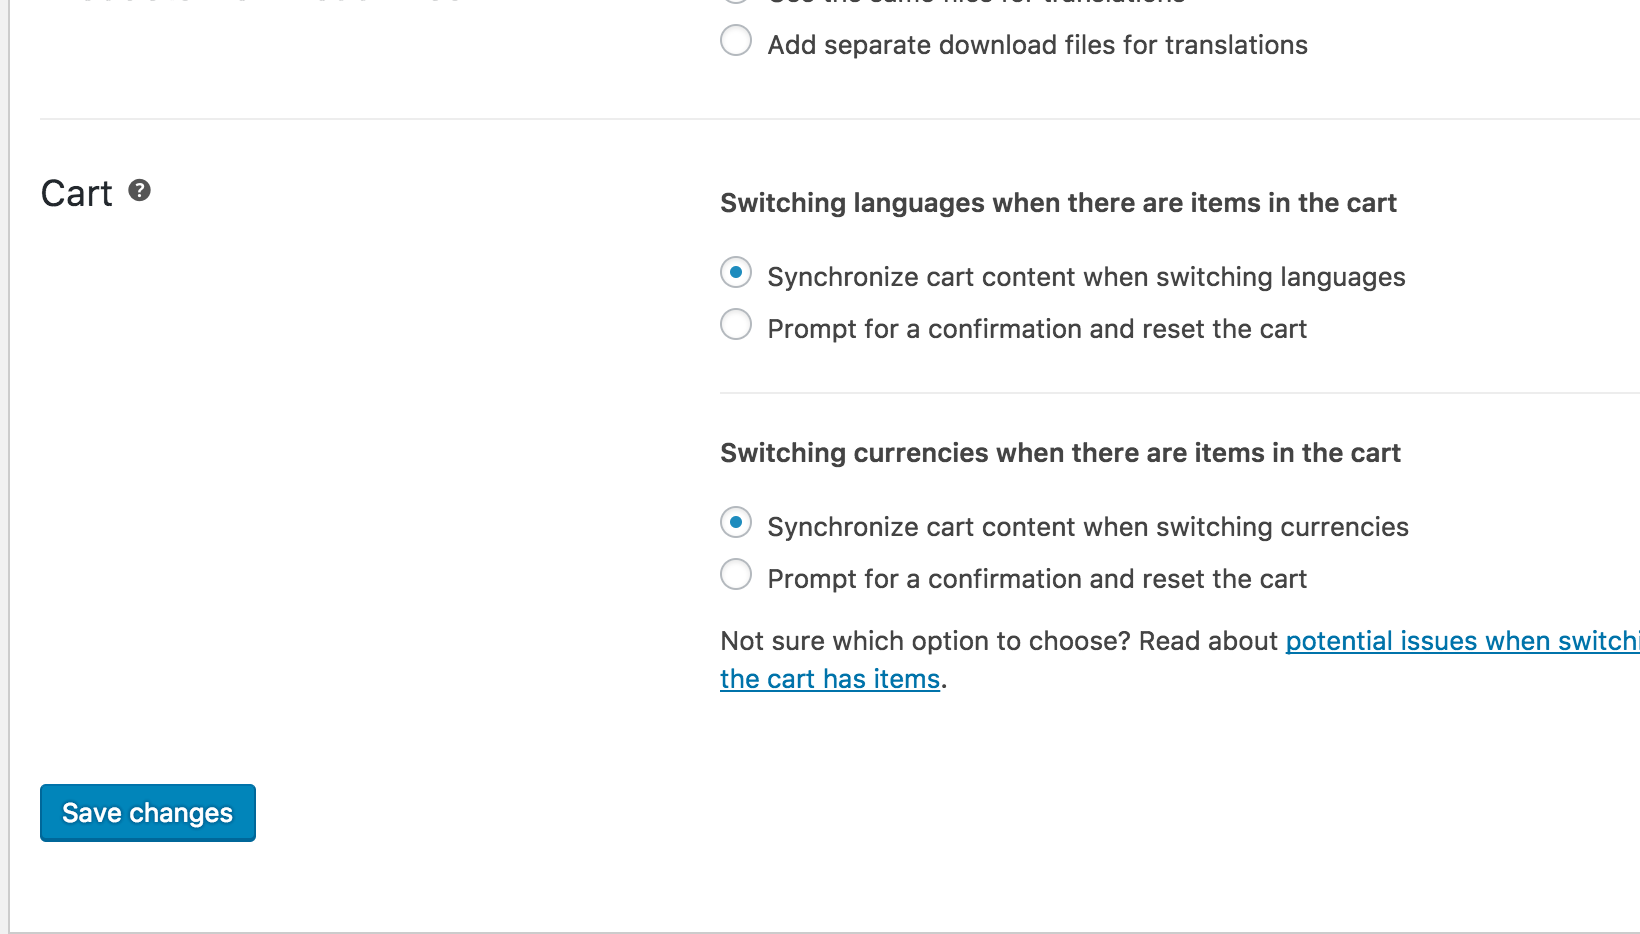 The new options to reset the cart when switching languages or currencies in WooCommerce Multilingual 4.0